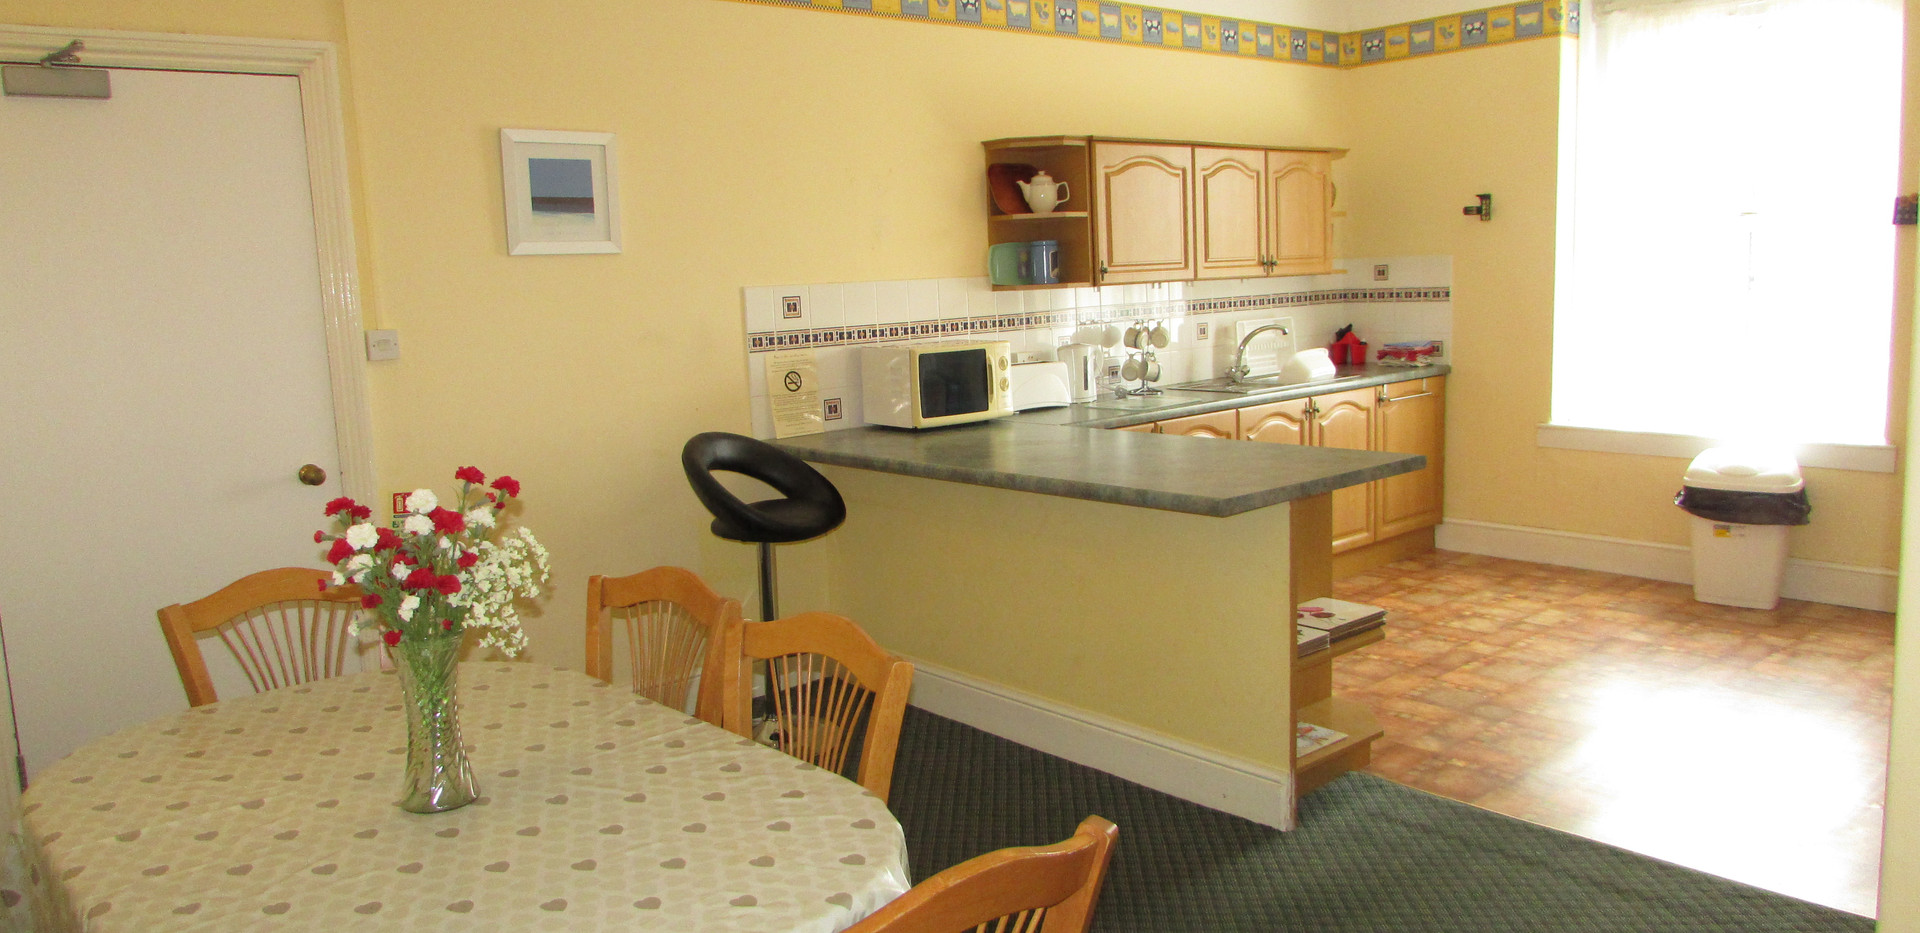 Apartment 11 - Kitchen/Dining Room